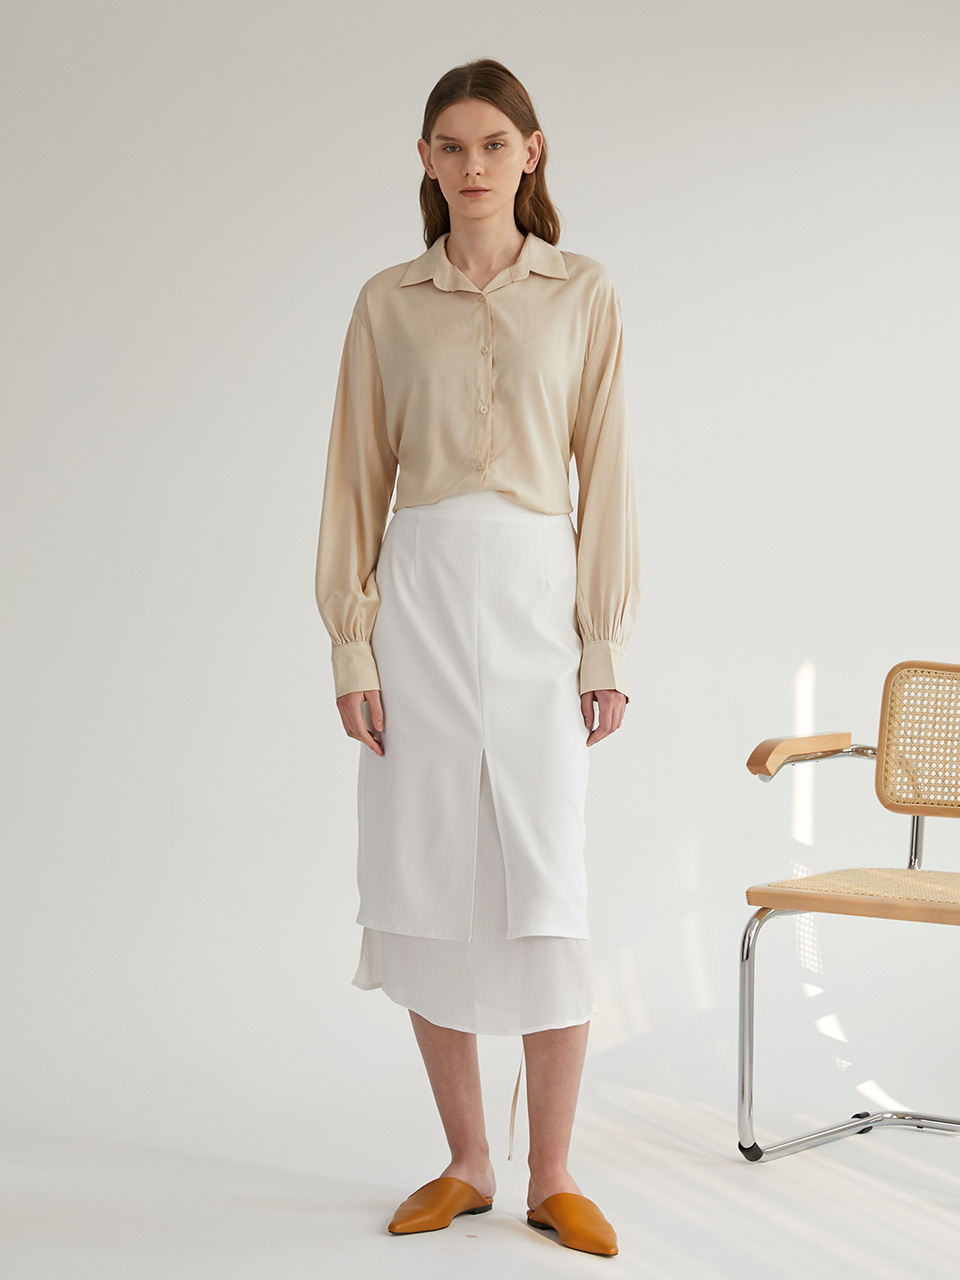 Slit Layered Skirt - White